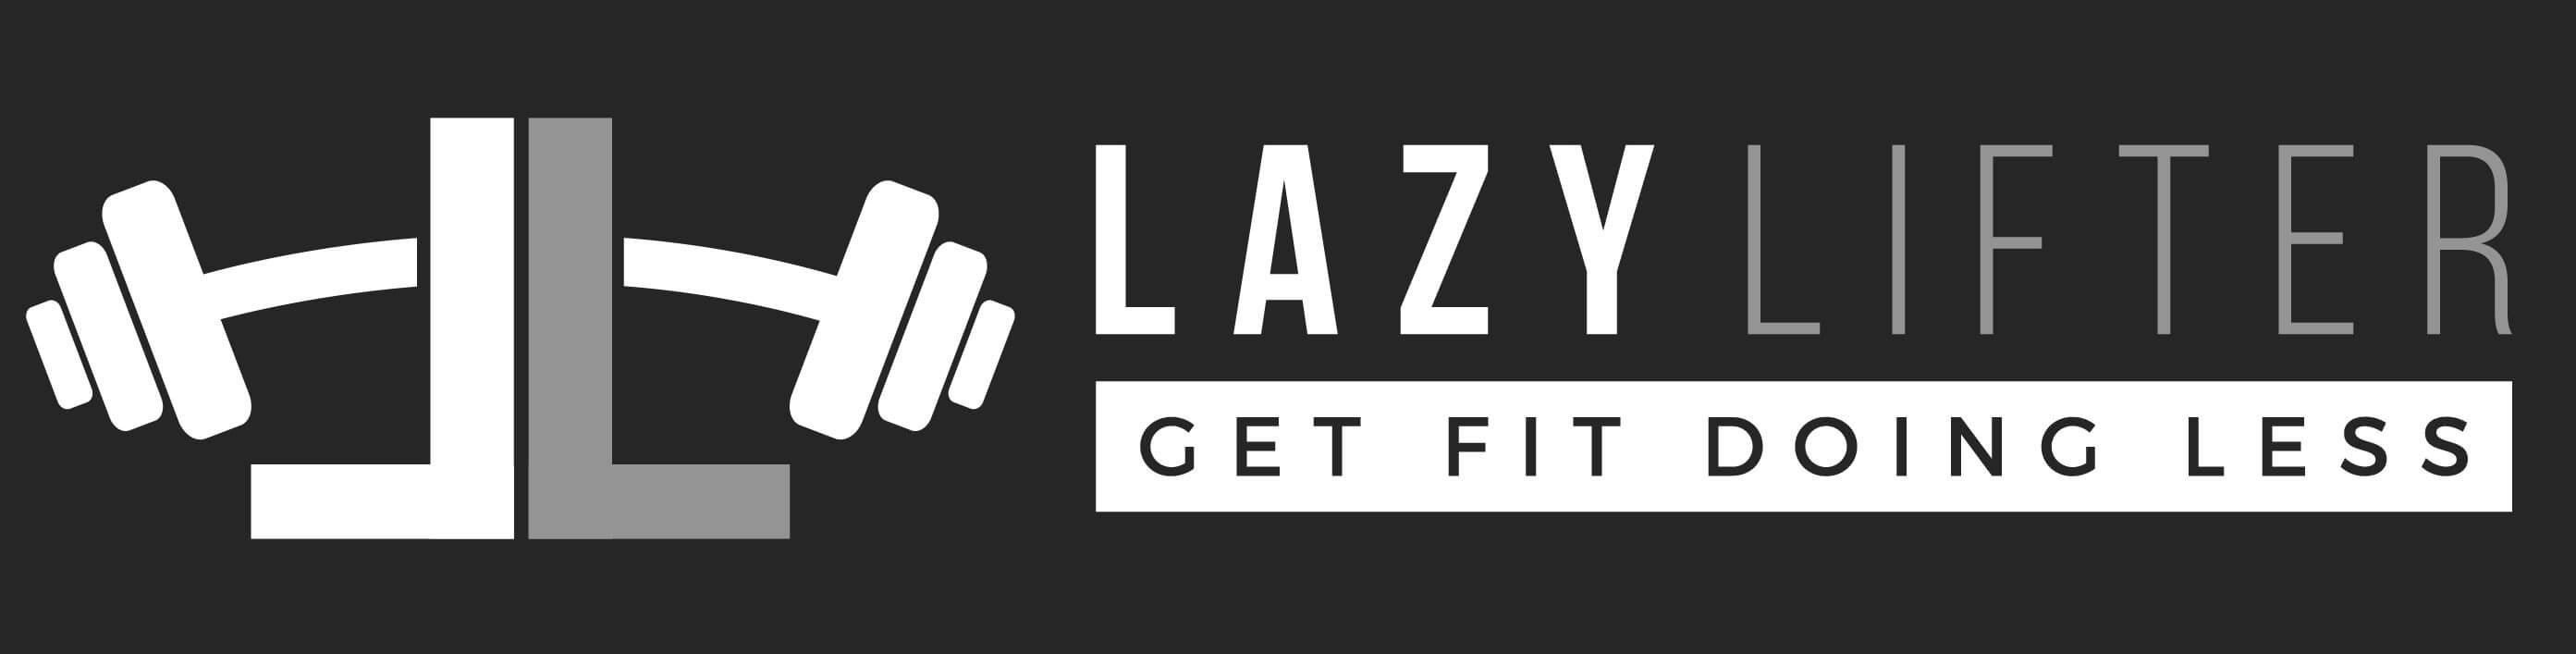 The Lazy Lifter